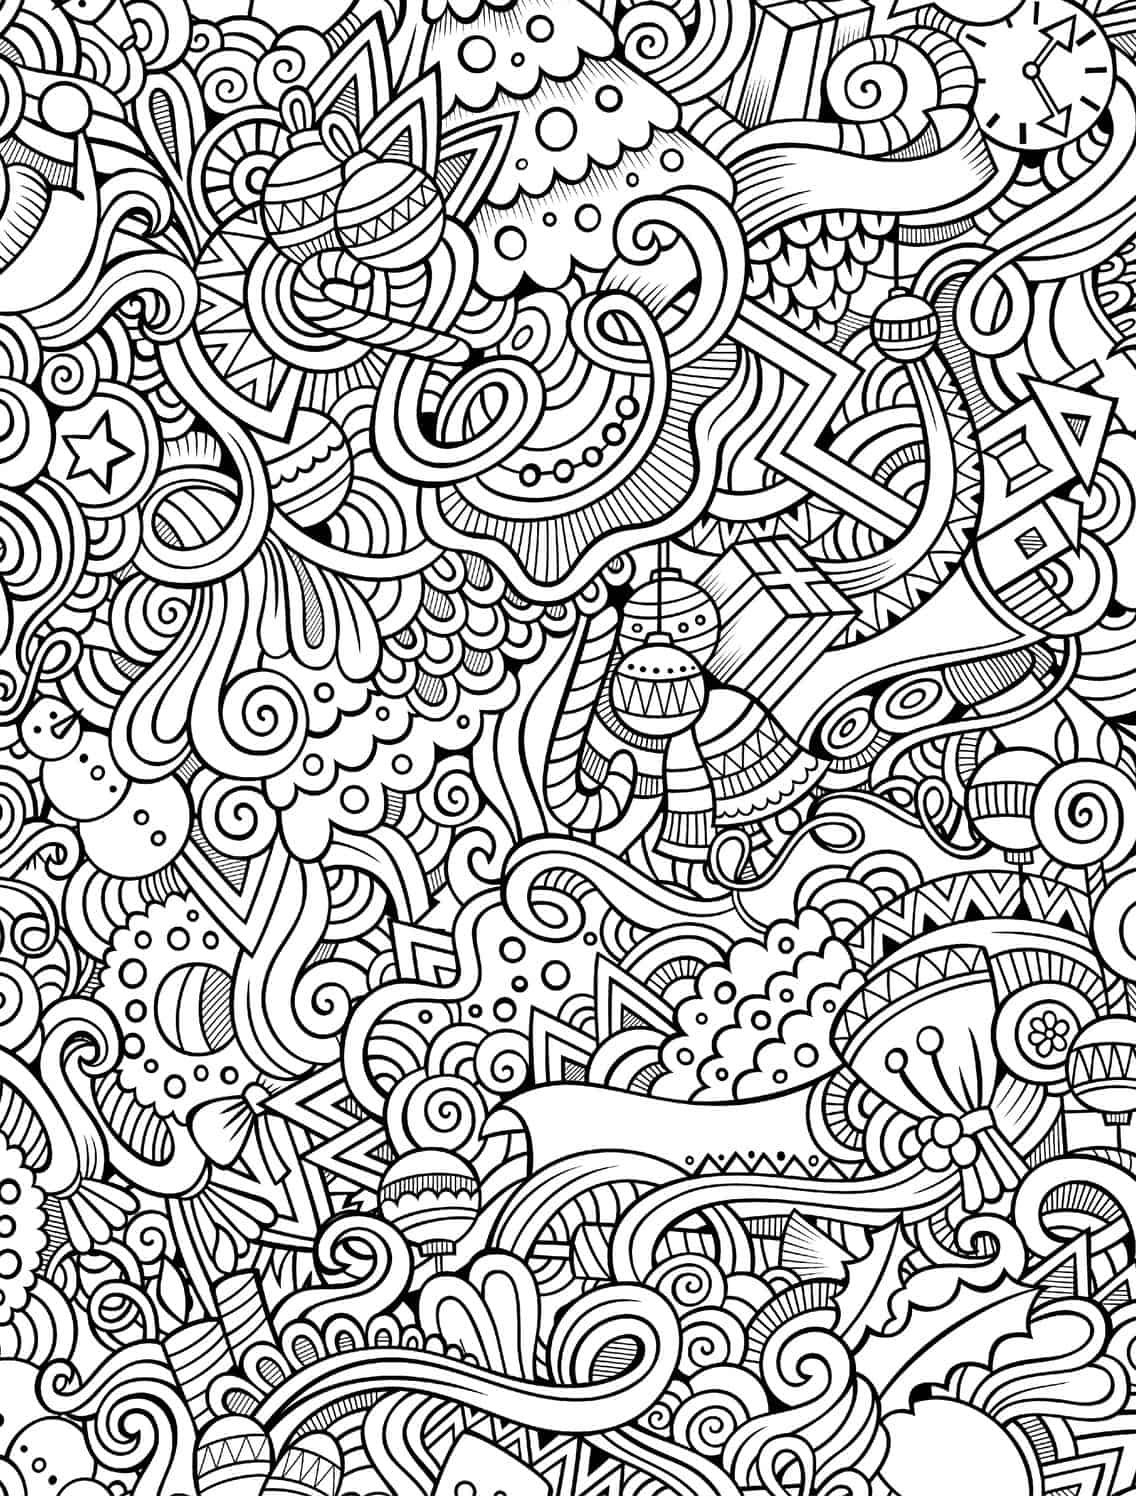 10 Free Printable Holiday Adult Coloring Pages Free Printable Coloring Pages